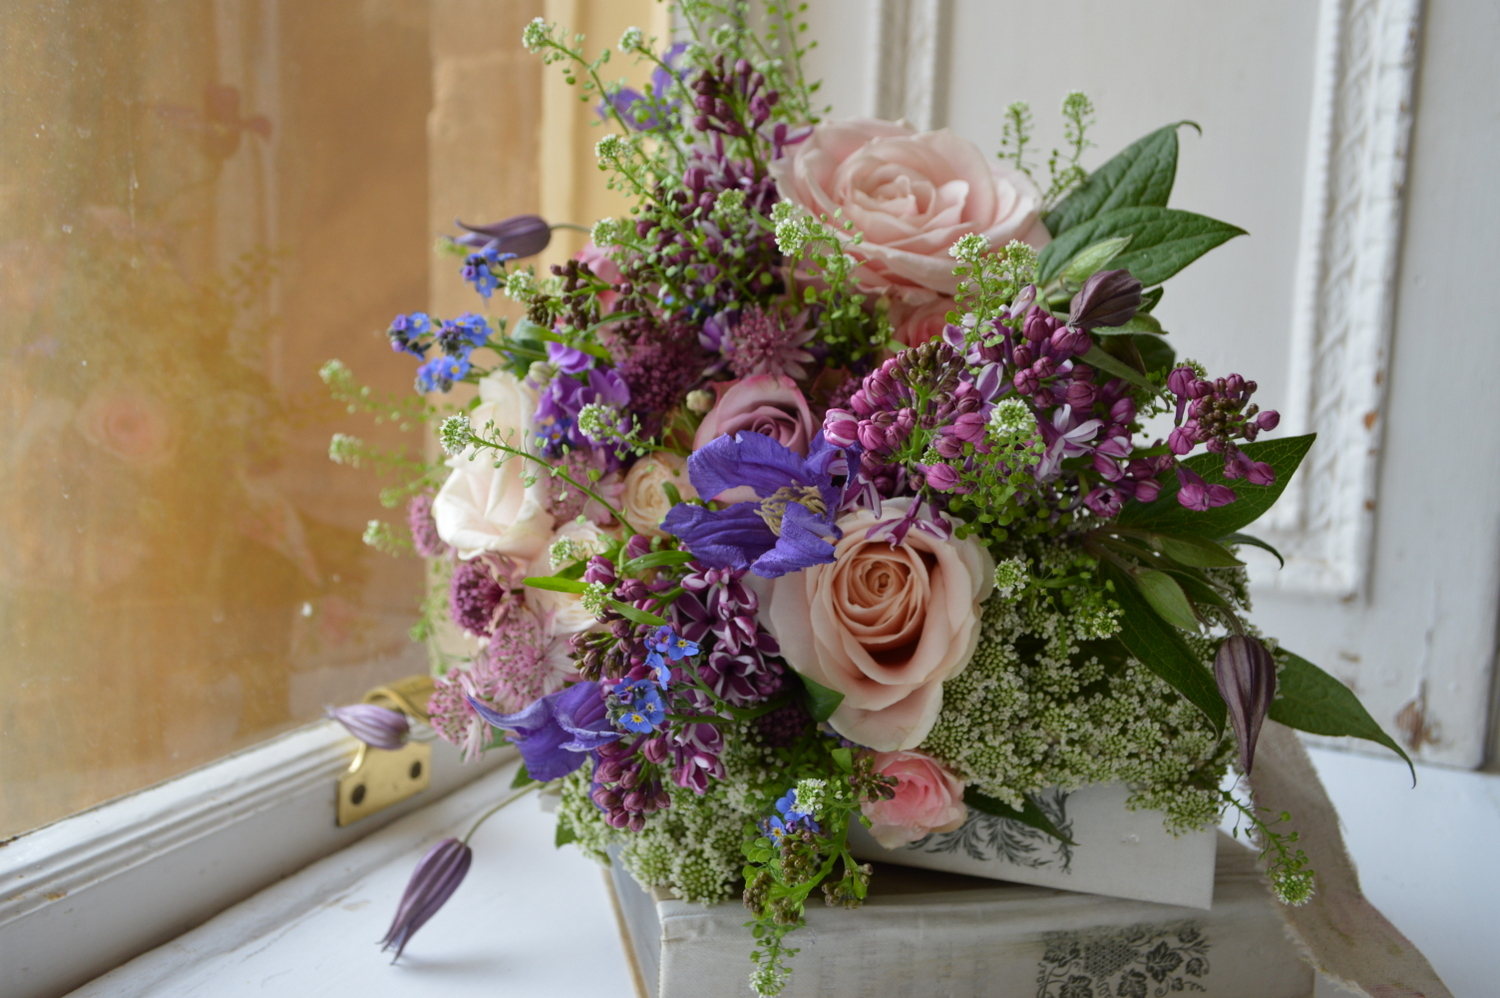 Romantic Wedding Bouquet with Lilac, Roses, Ammi & Clematis.